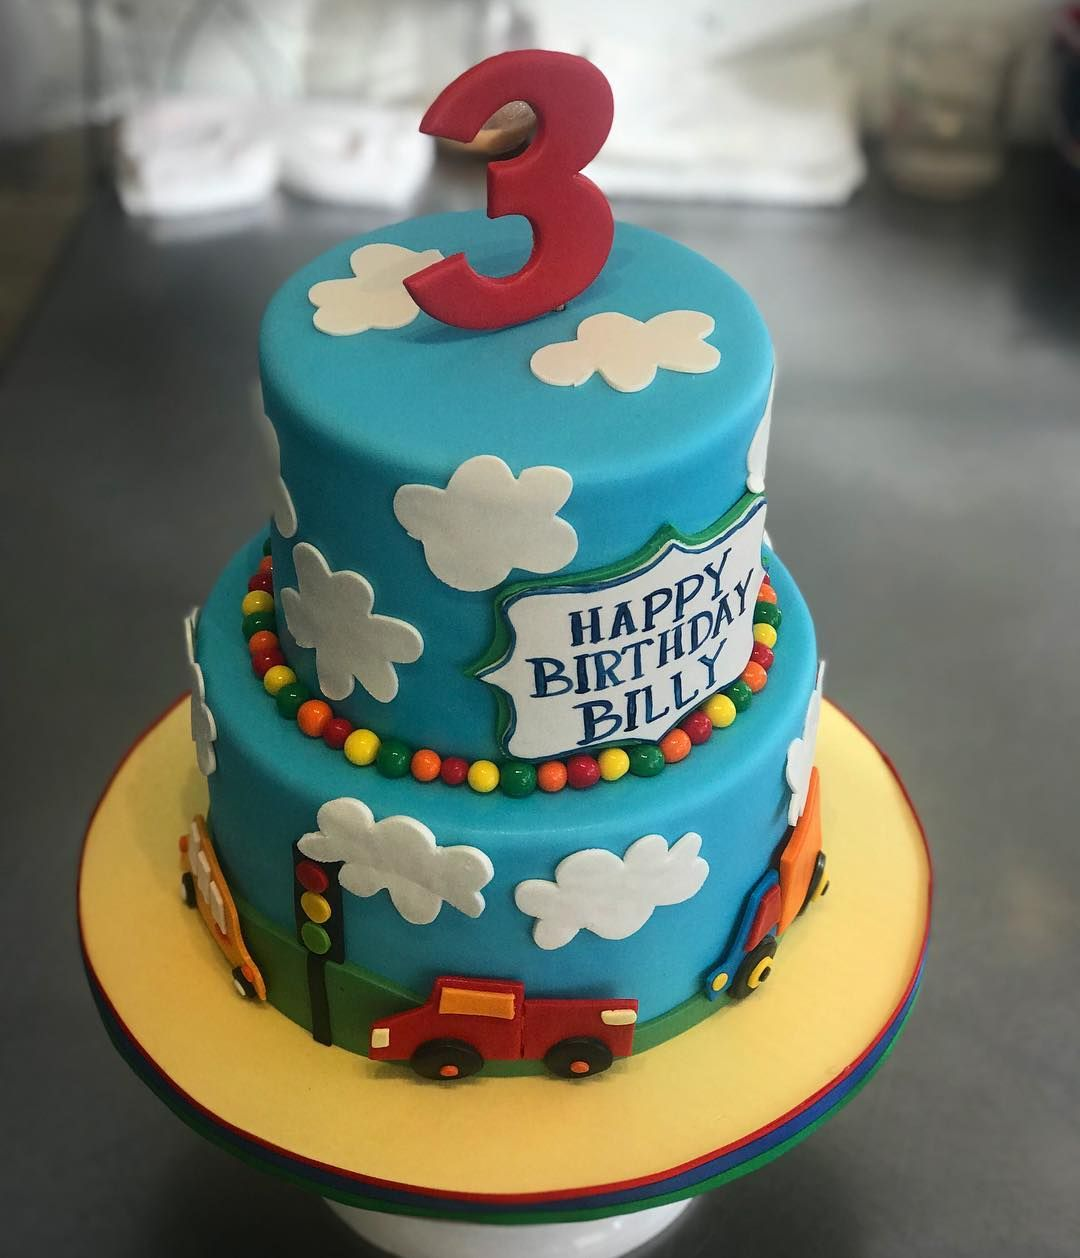 Stupendous An Adorable Car Themed Birthday Cake Perfect For A 3 Year Old Funny Birthday Cards Online Overcheapnameinfo